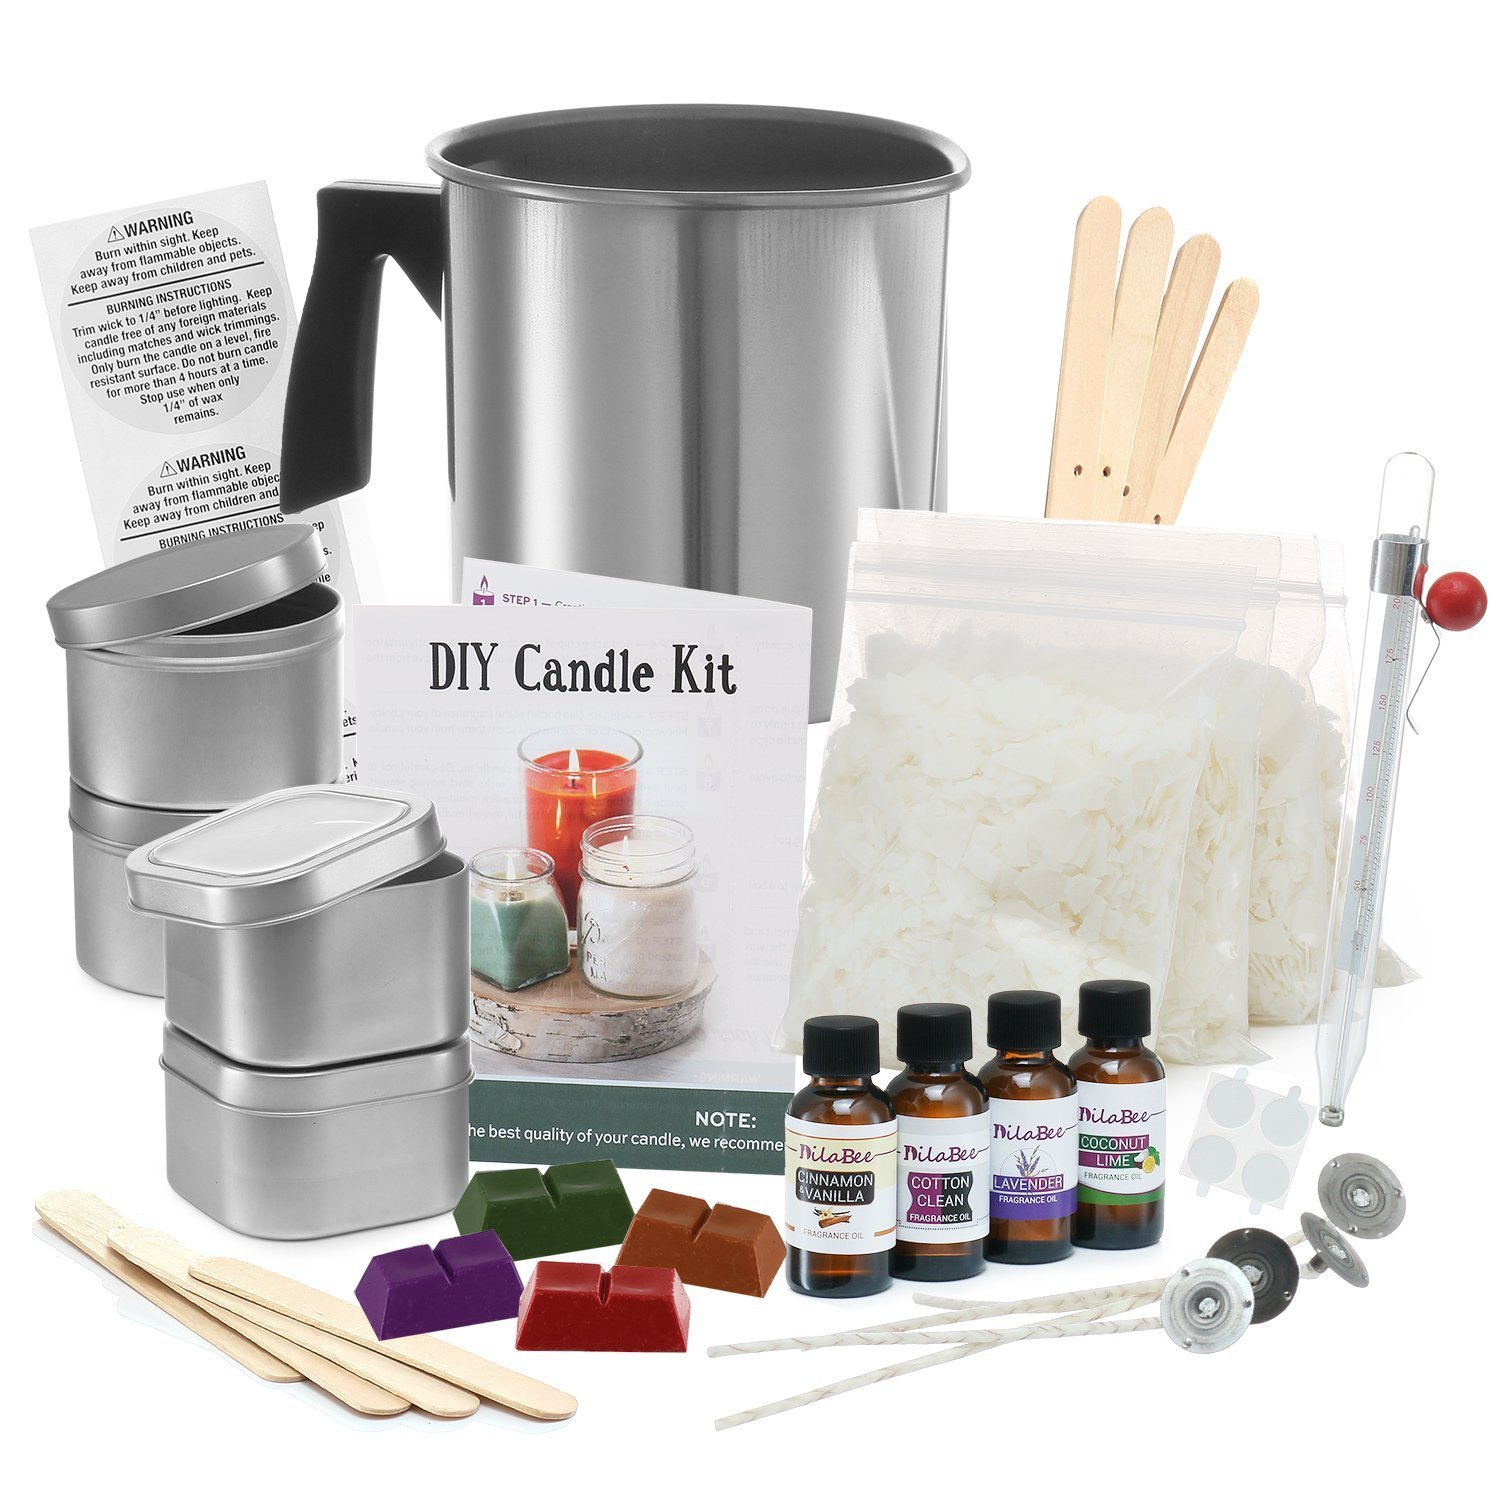 Complete DIY Candle Making Kit Supplies – Create Large Scented Soy Candles – Full Beginners Set Including 2 LB Wax, Rich Scents, Dyes, Wicks, Melting Pitcher, Tin Containers and More DilaBee 4336840781